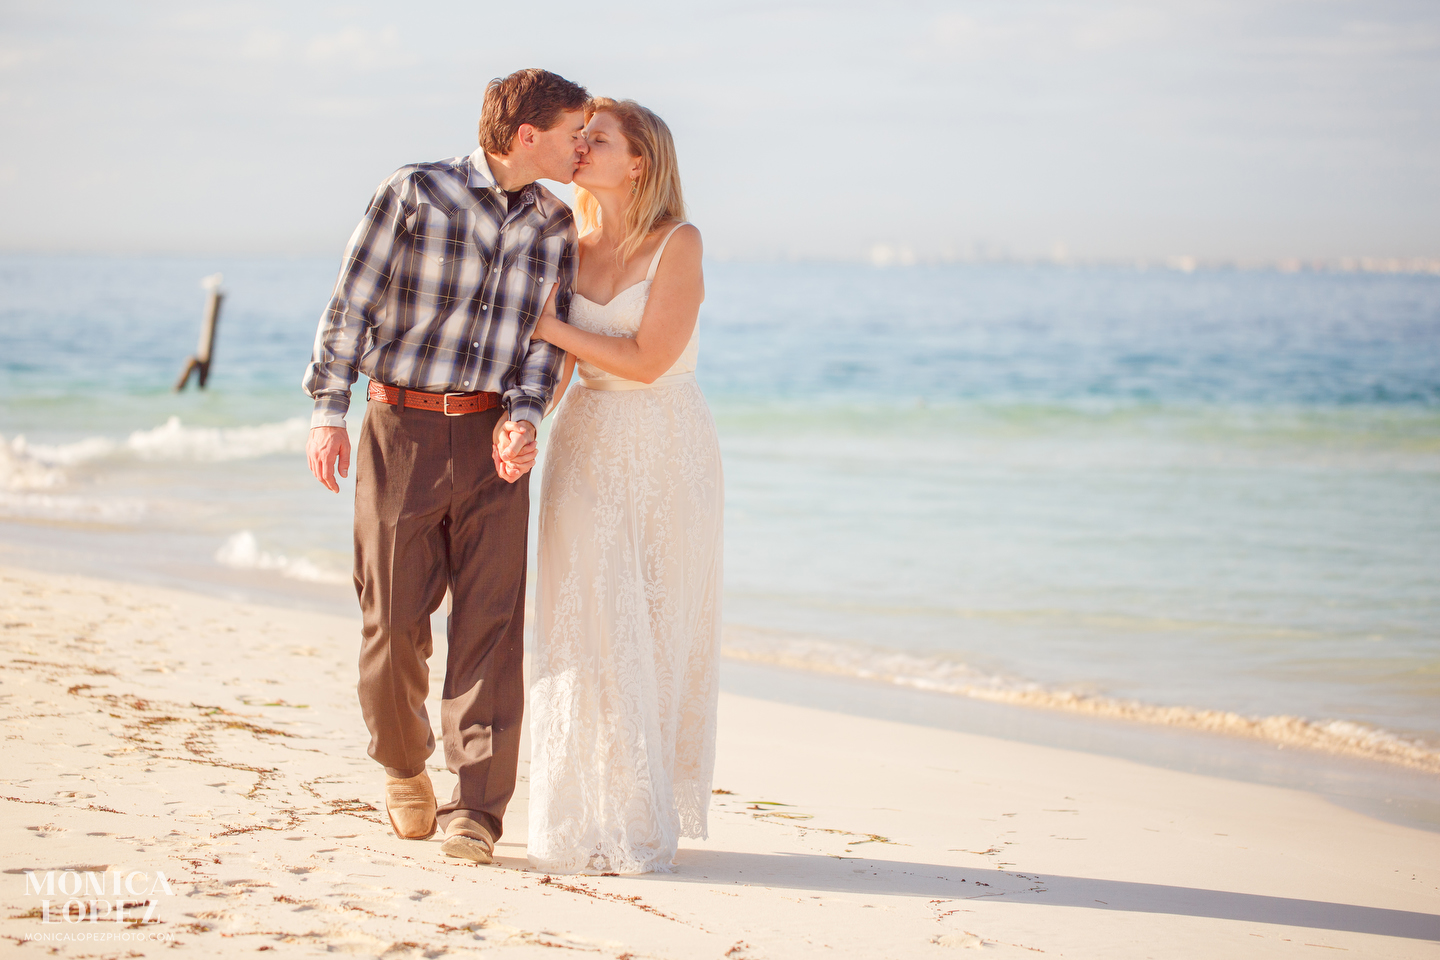 Isla Mujeres Sunrise Elopement by Monica Lopez Photography